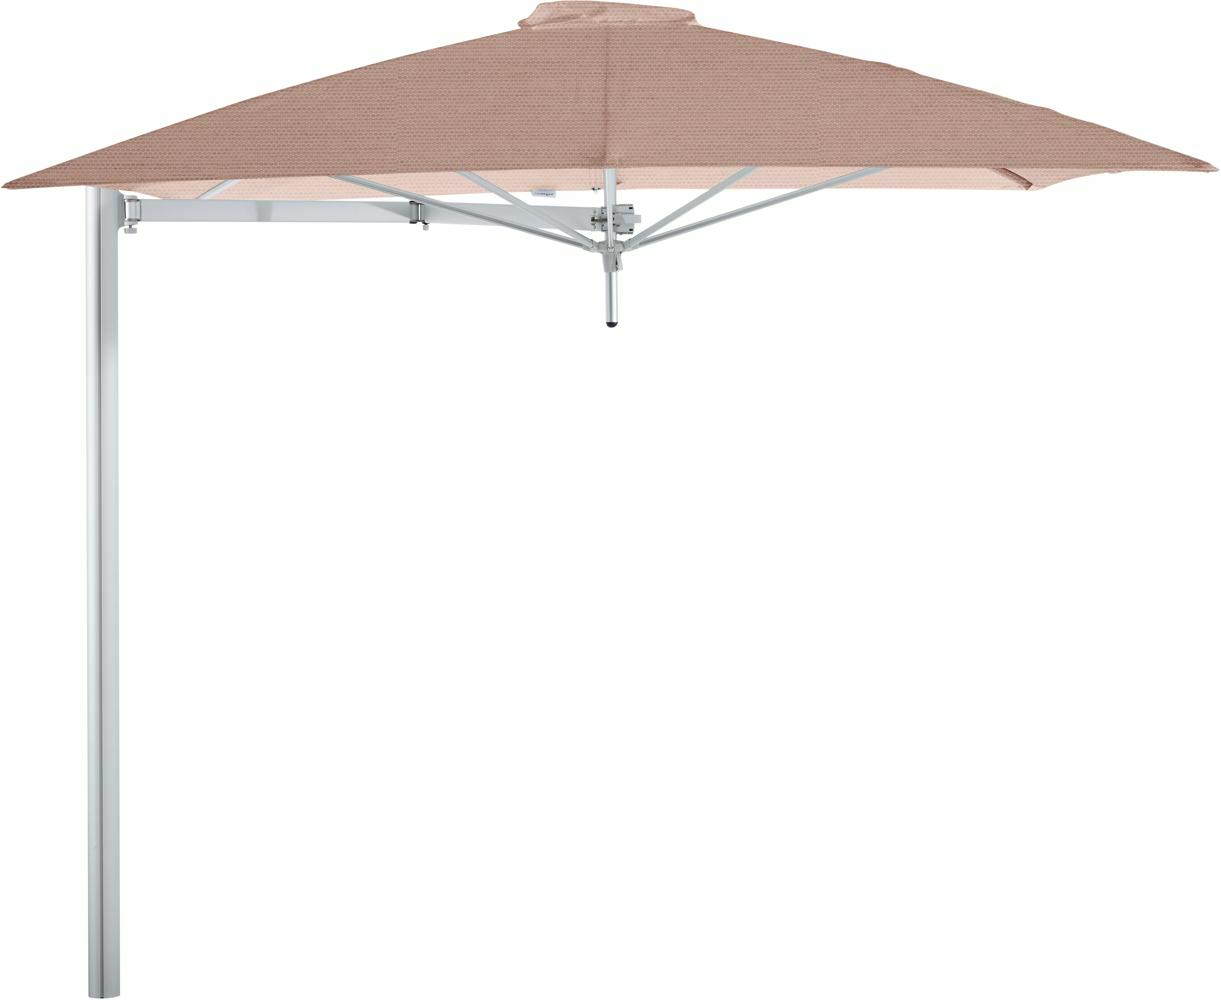 Paraflex cantilever umbrella square 2,3 m with Blush fabric and a Neo arm